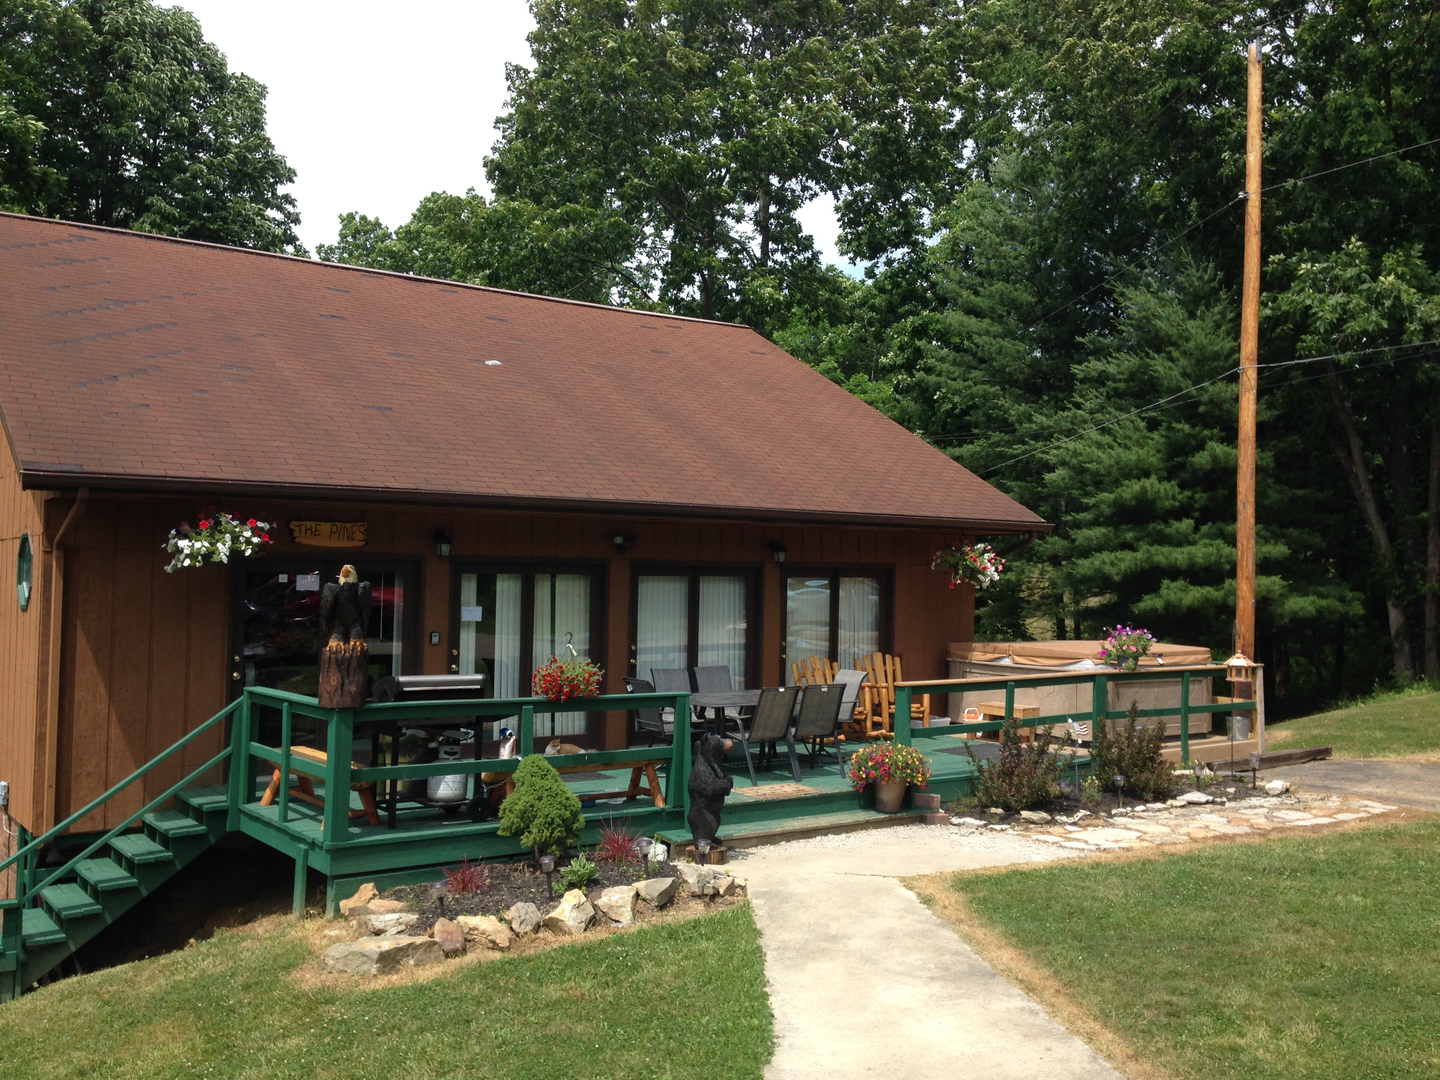 The Pines Lodge - Hocking Hills Cabin Rentals and Hocking